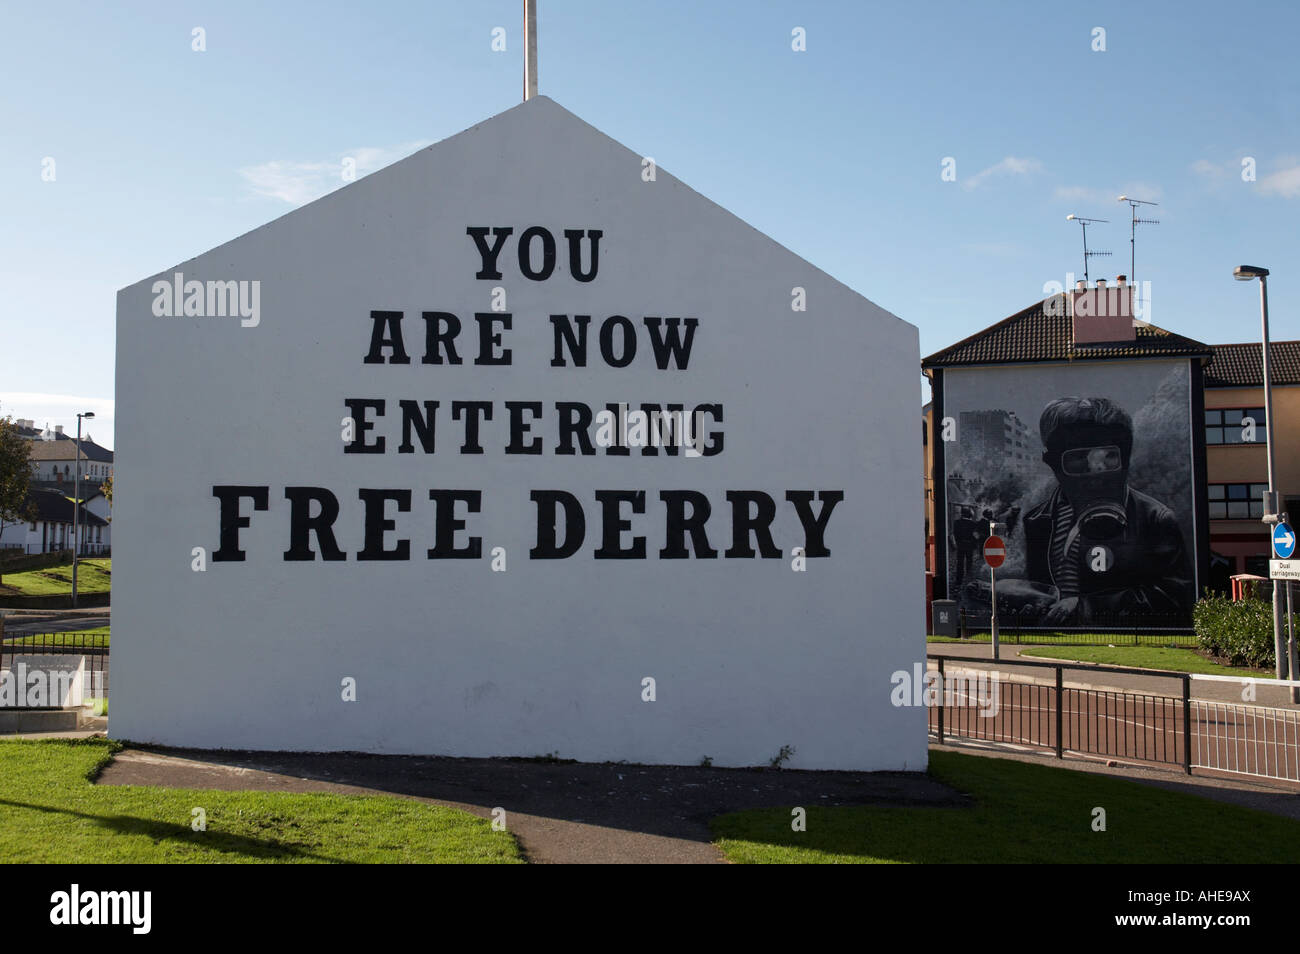 you are now entering free derry gable wall painting with petrol bomber mural in the background at free derry corner - Stock Image